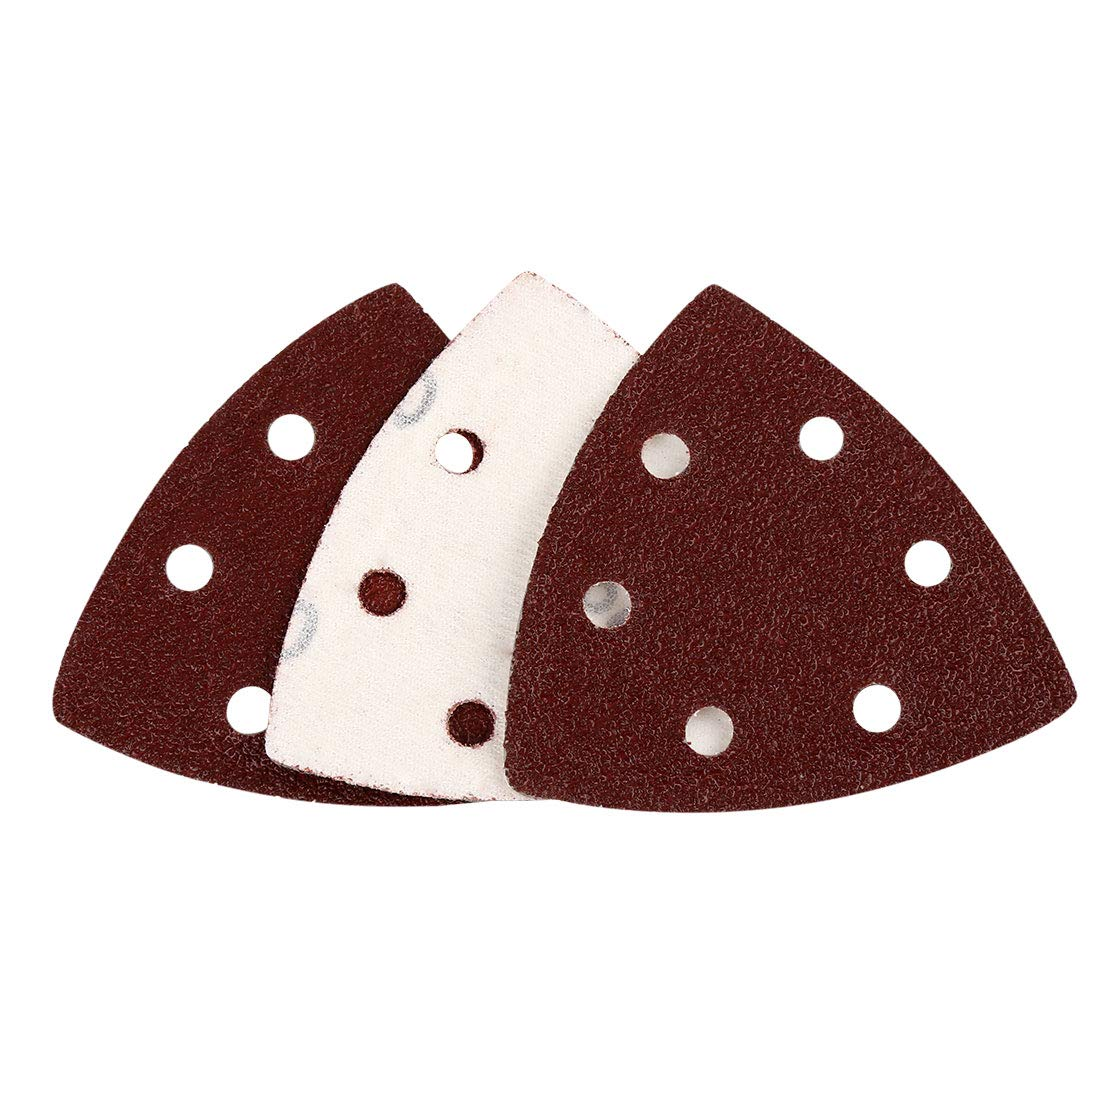 uxcell 50 Pcs 3.5 Inch Hook and Loop Sanding Discs Pads 40 Grit 6-Hole Triangle Sandpaper